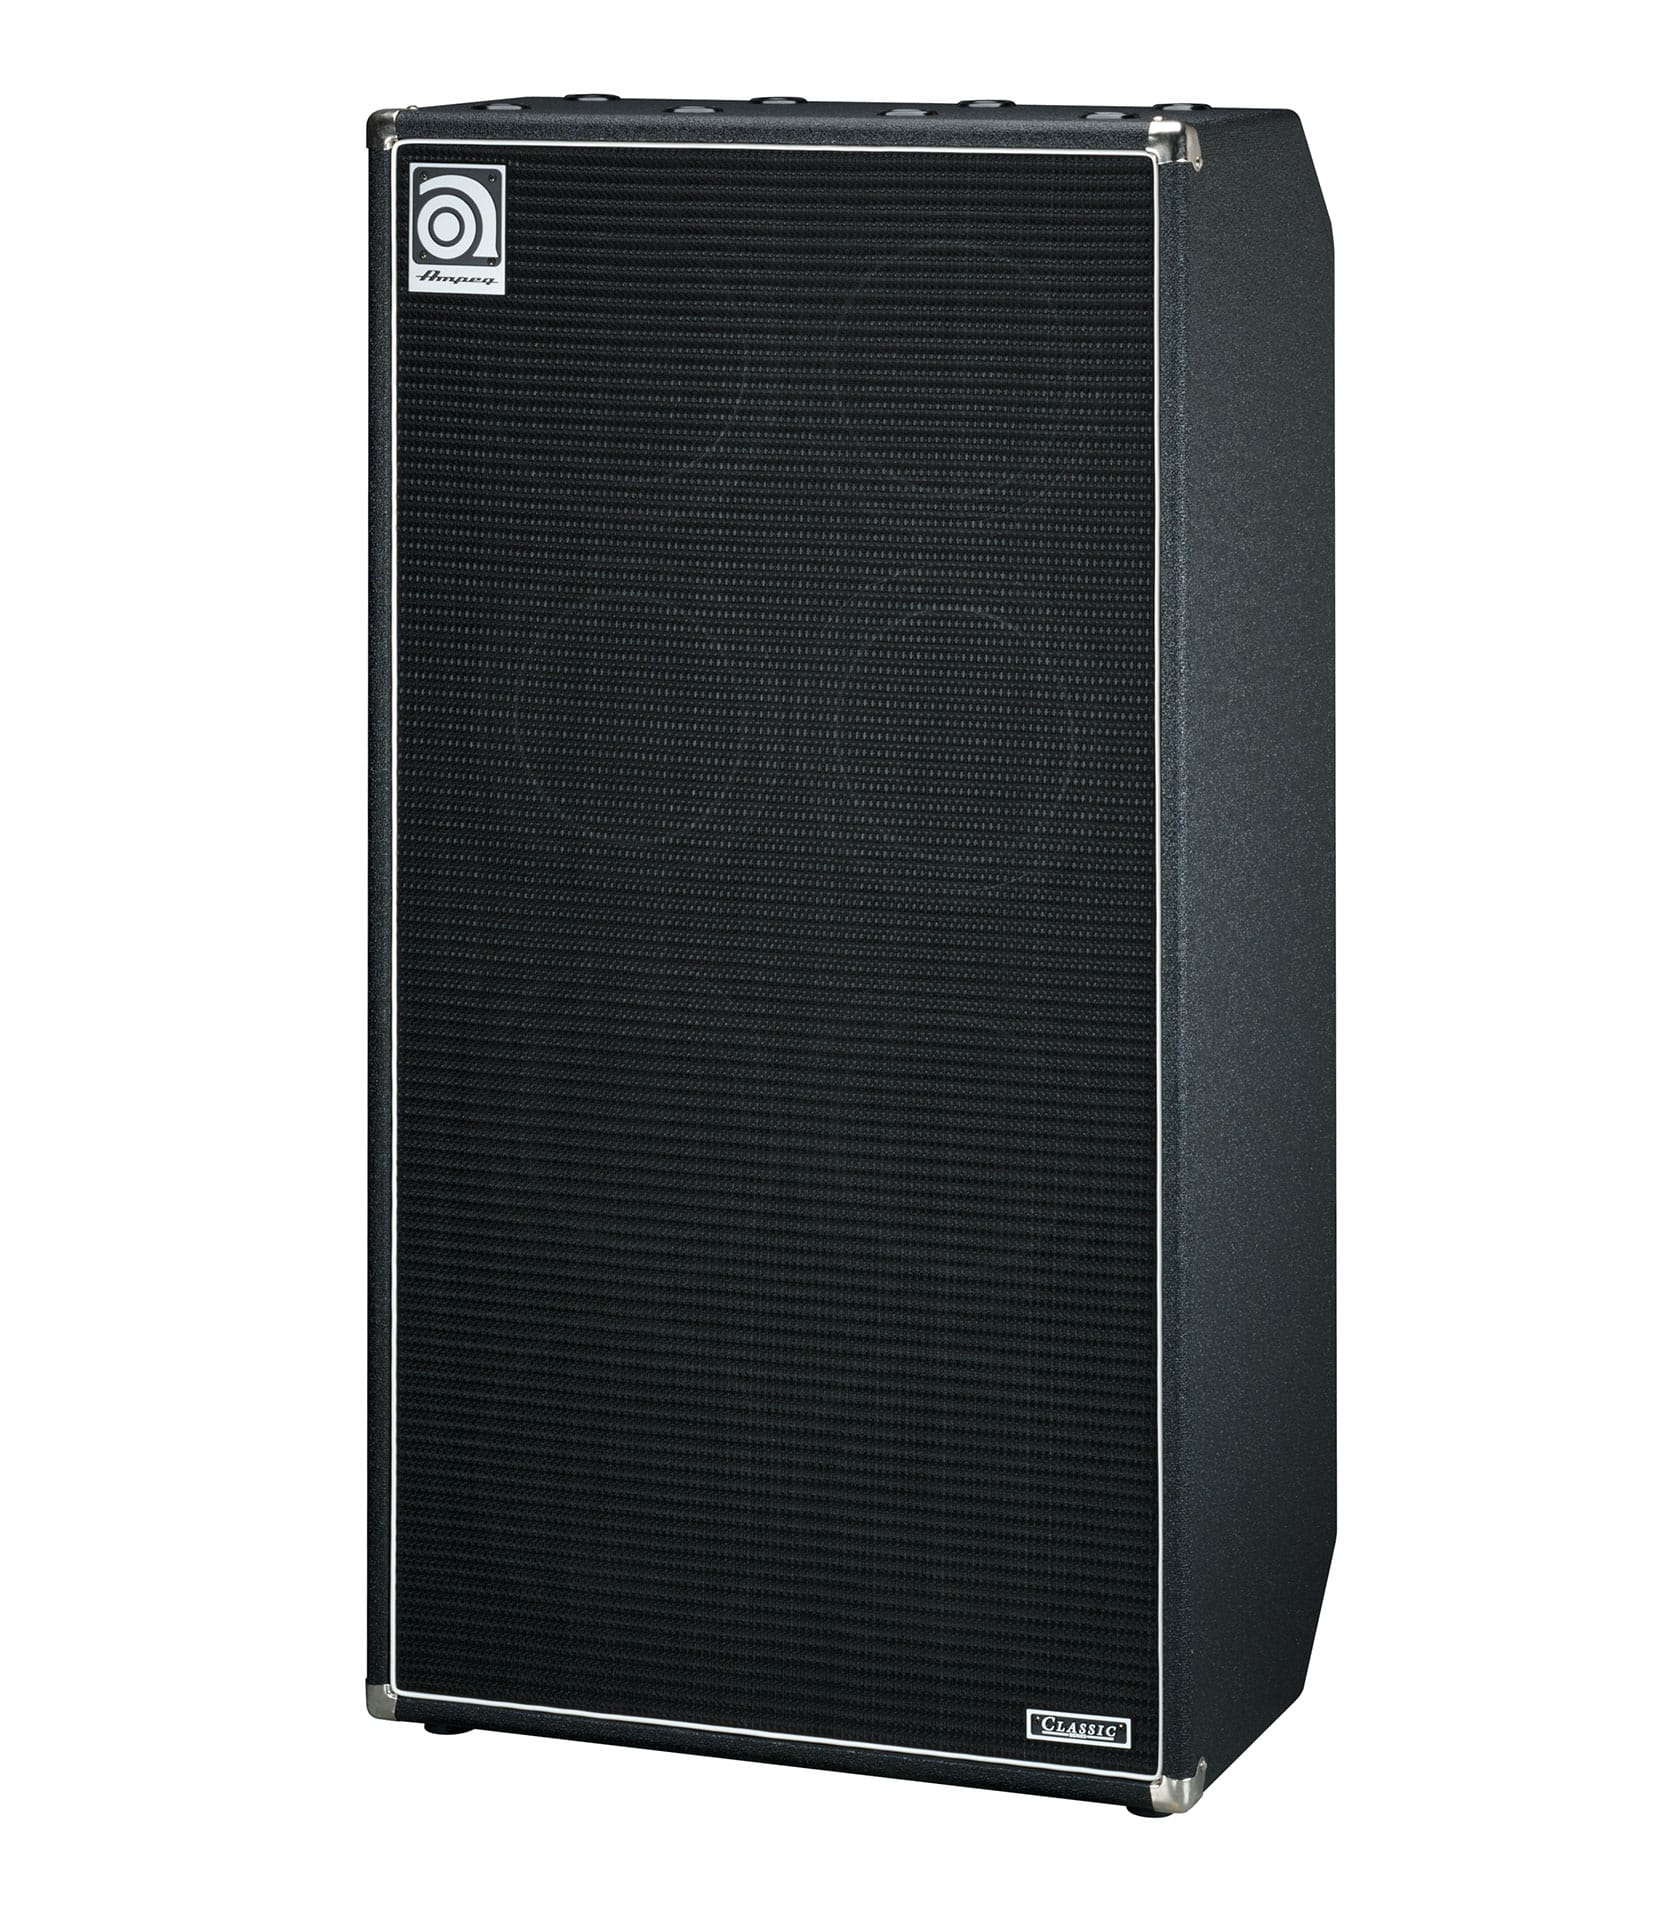 Ampeg - SVT-810E - Melody House Musical Instruments